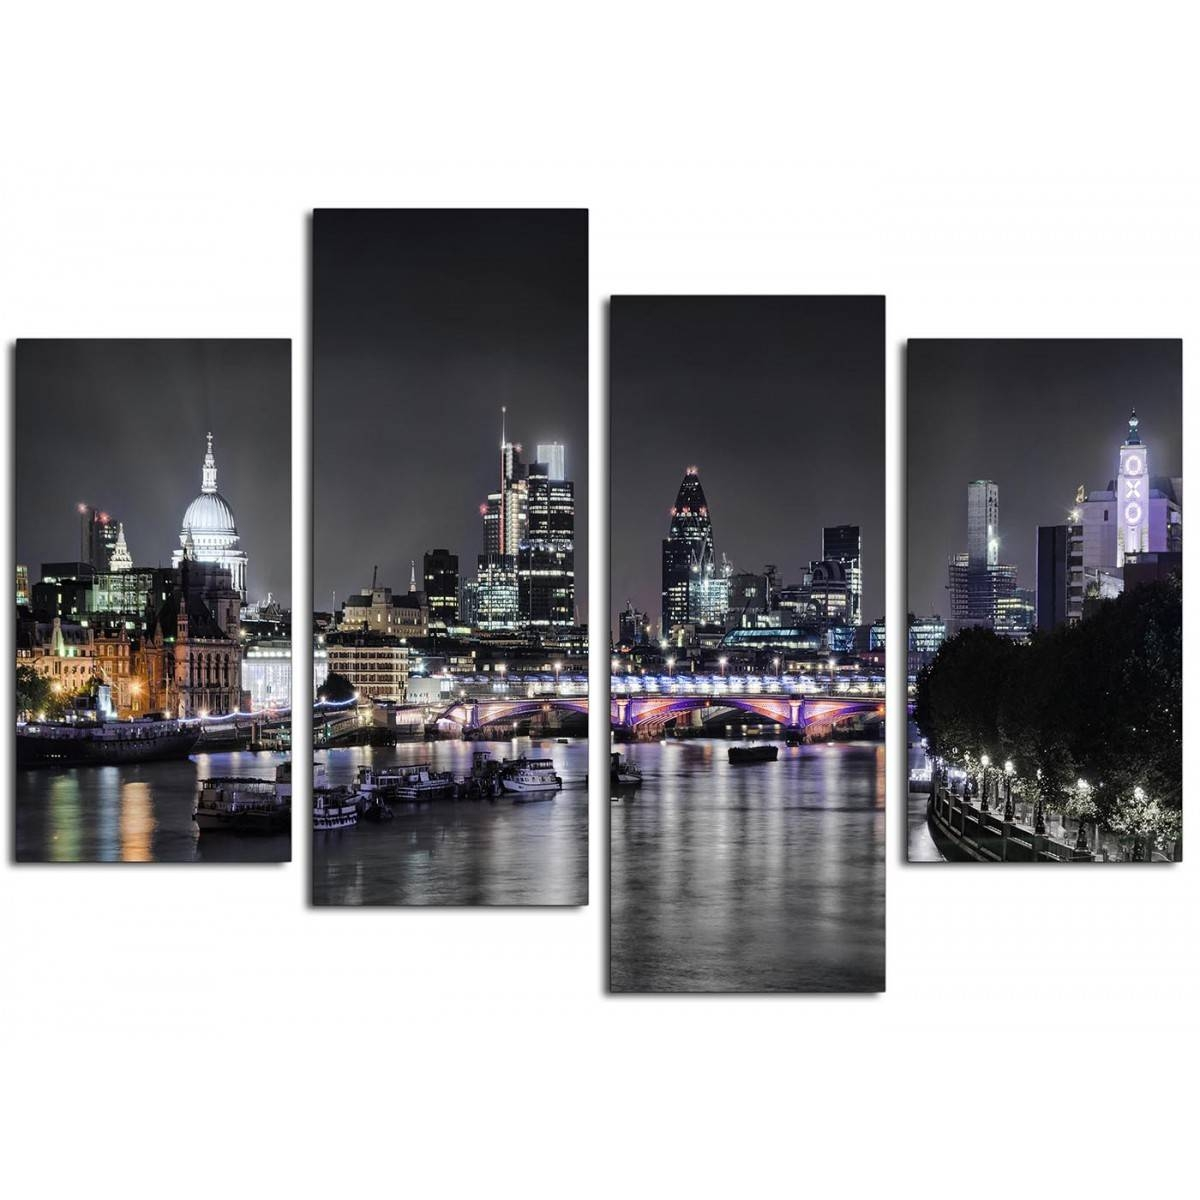 Canvas Wall Art Of London Skyline For Your Living Room – 4 Panel Pertaining To Most Recently Released Cityscape Canvas Wall Art (View 4 of 20)